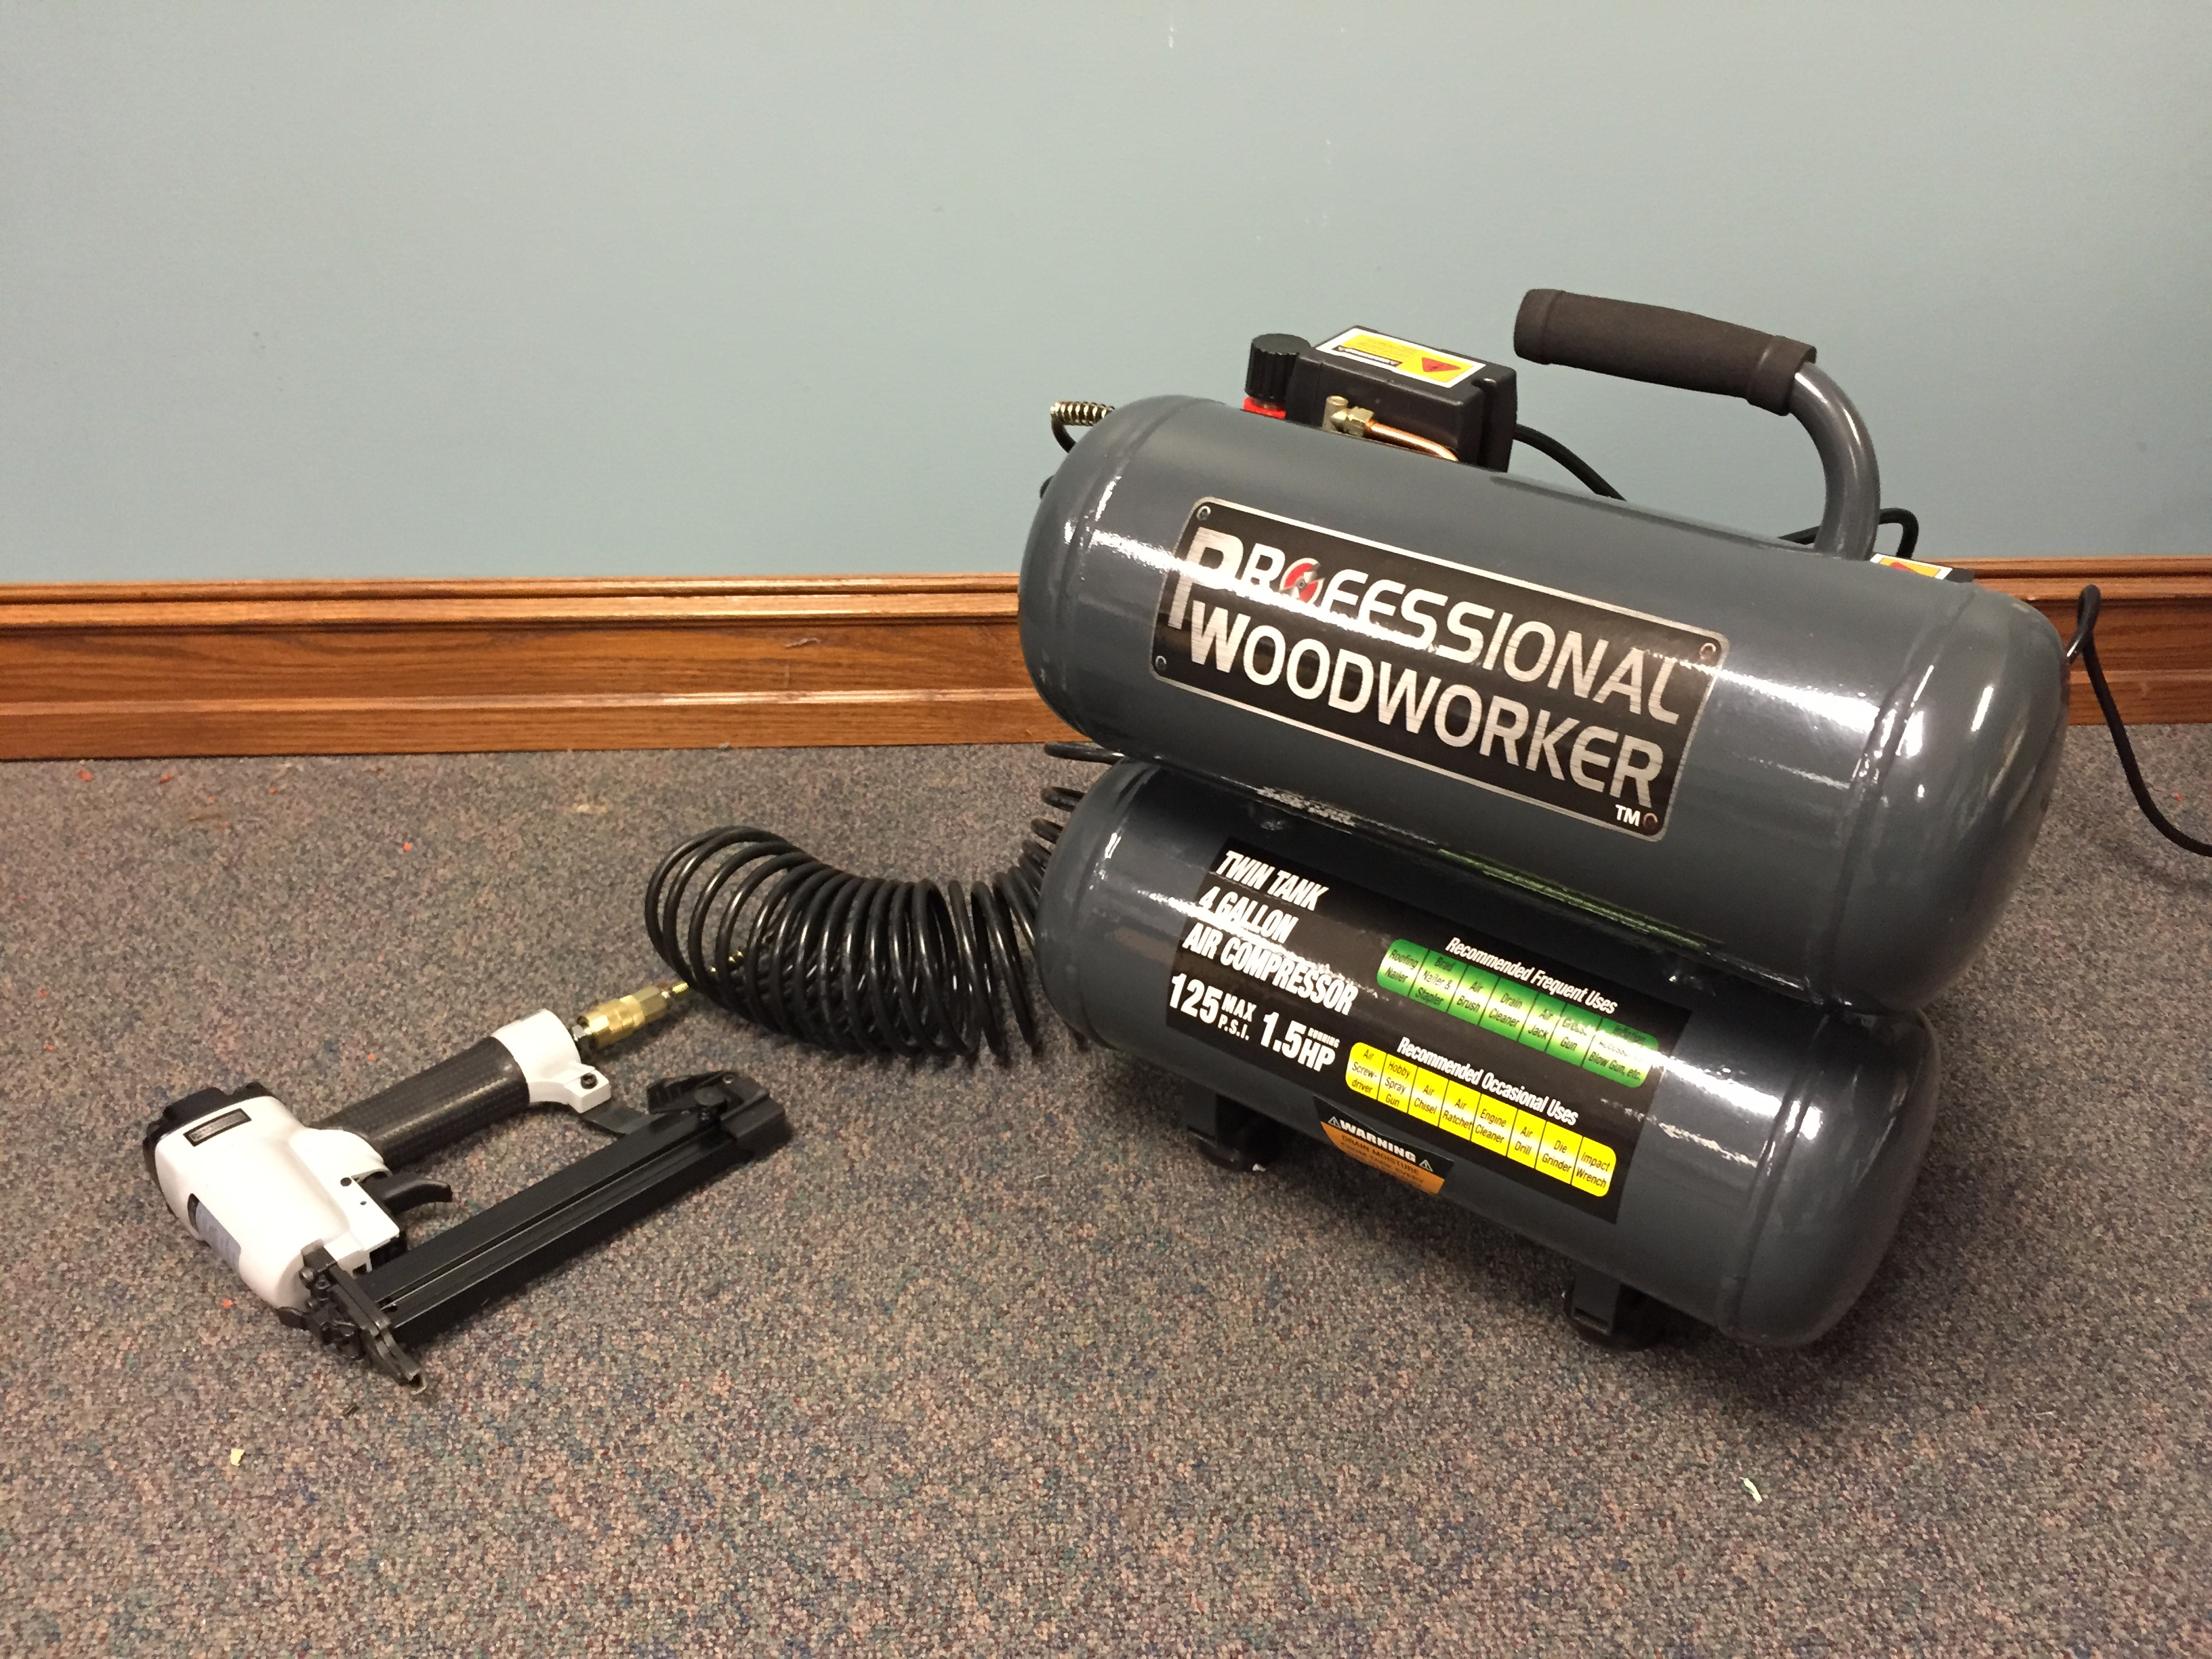 Professional Woodworker 4 Gallon 1.5HP Twin Stack Air Compressor